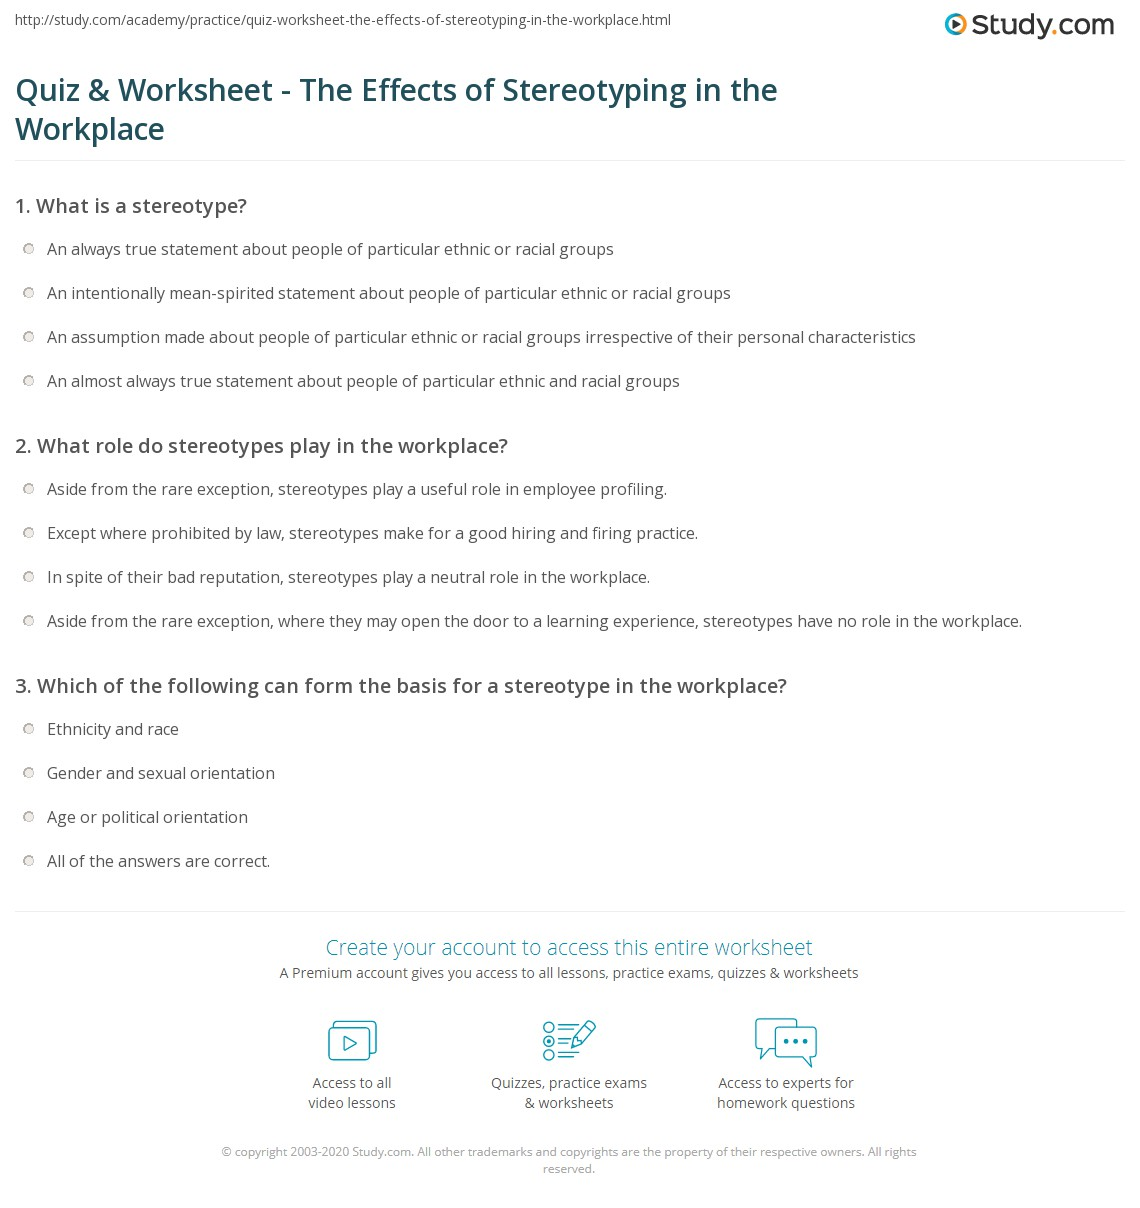 quiz worksheet the effects of stereotyping in the workplace print stereotyping in the workplace definition examples effects worksheet